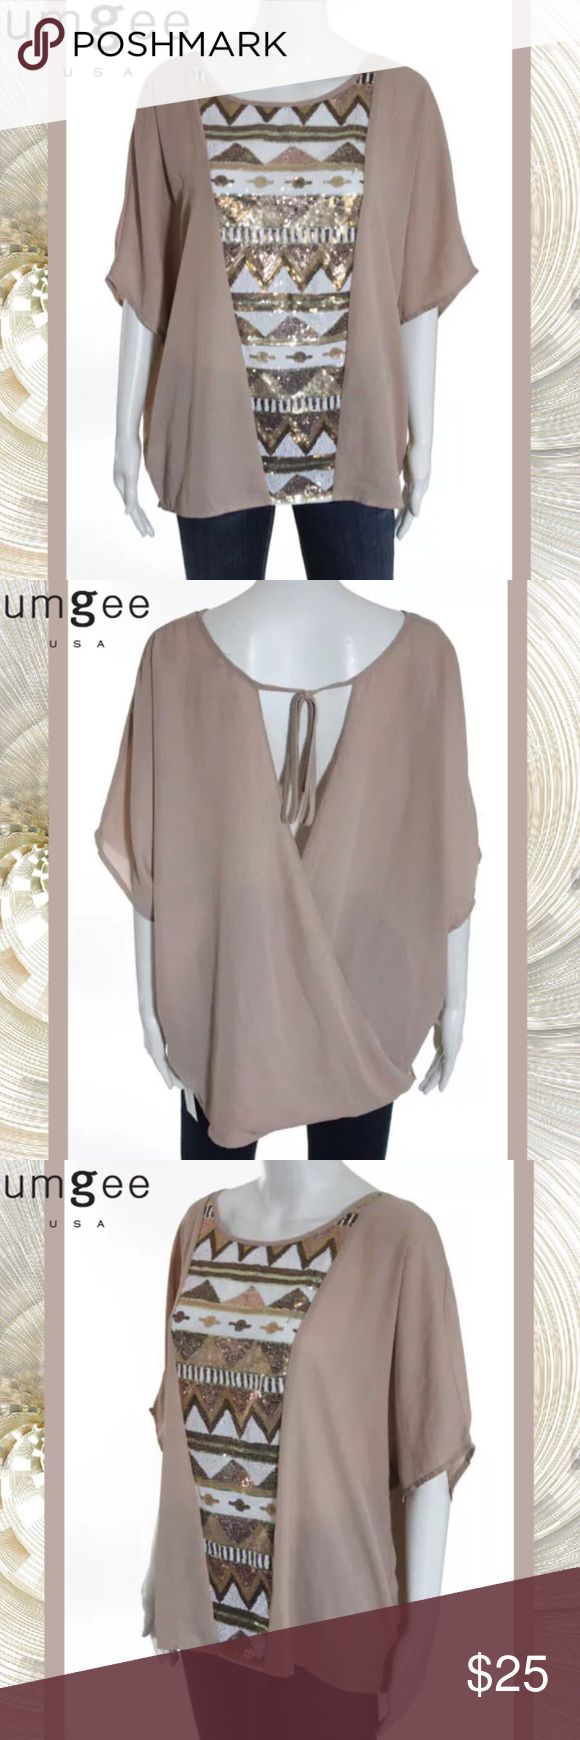 """UMGEE USA Beige/Wht/Gold Sequin Dolman Sleeve Top SIZE XL. 27"""" Length. 40"""" Bust. Semi-Sheer Rose-Beige Color w White, Silver & Gold Sequin Front. Geometric Pattern. 11"""" Dolman/Batwing Sleeves. Unique Criss-Cross Back. Loose Fitting & Totally Chic. 55% Cotton/45% Polyester. Hand Wash. NEVER WORN Umgee USA Tops Blouses"""